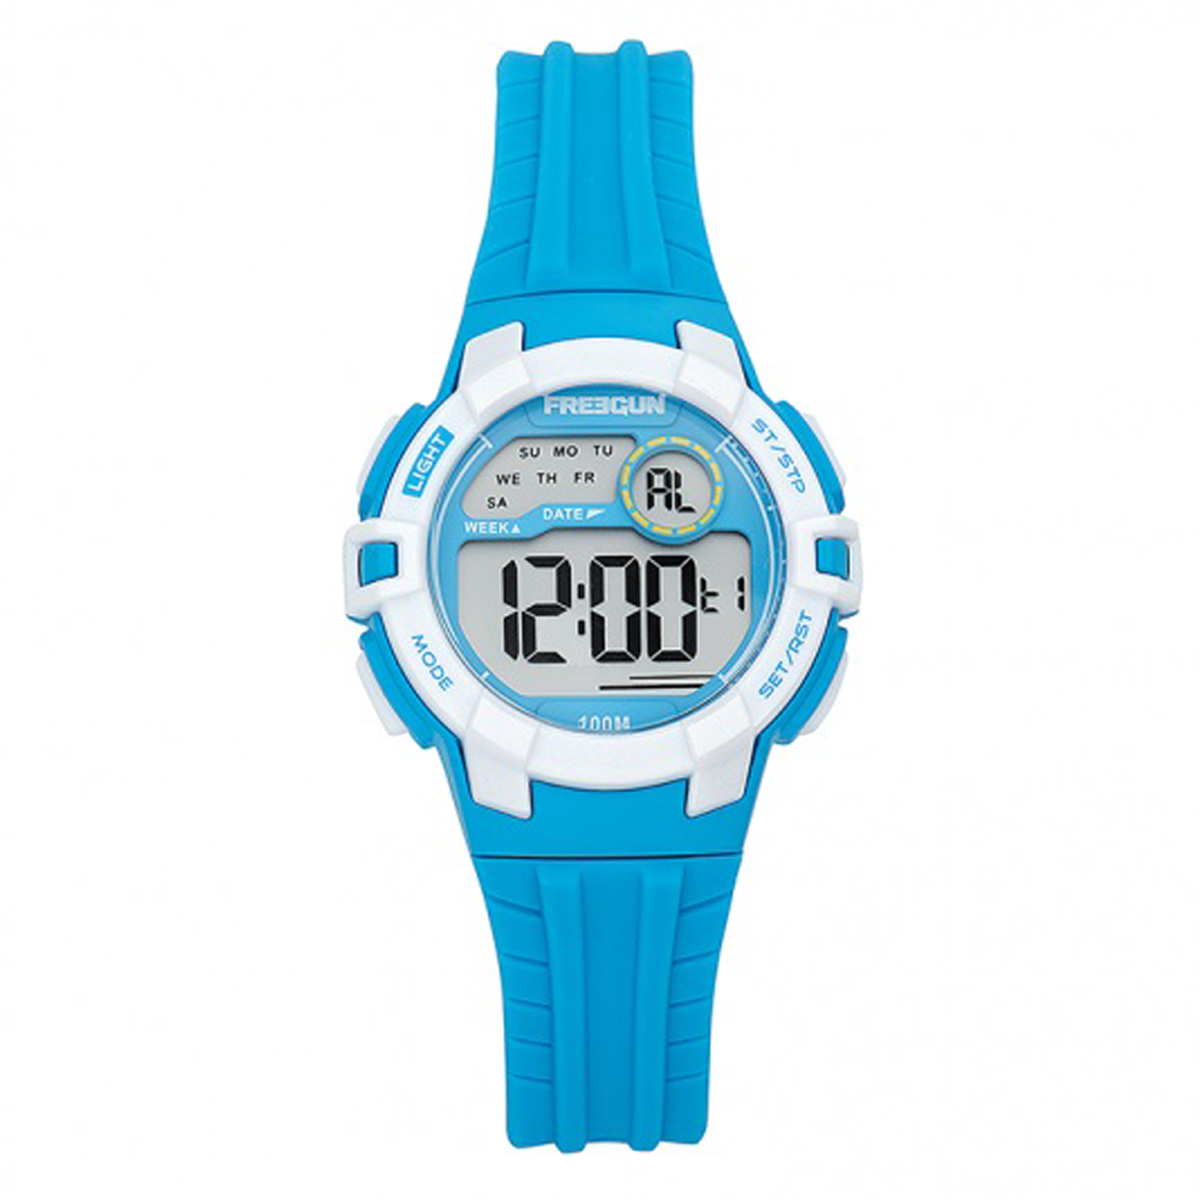 Montre apex étanche \'Freegun\' bleu (digital) - 35 mm - [Q7423]